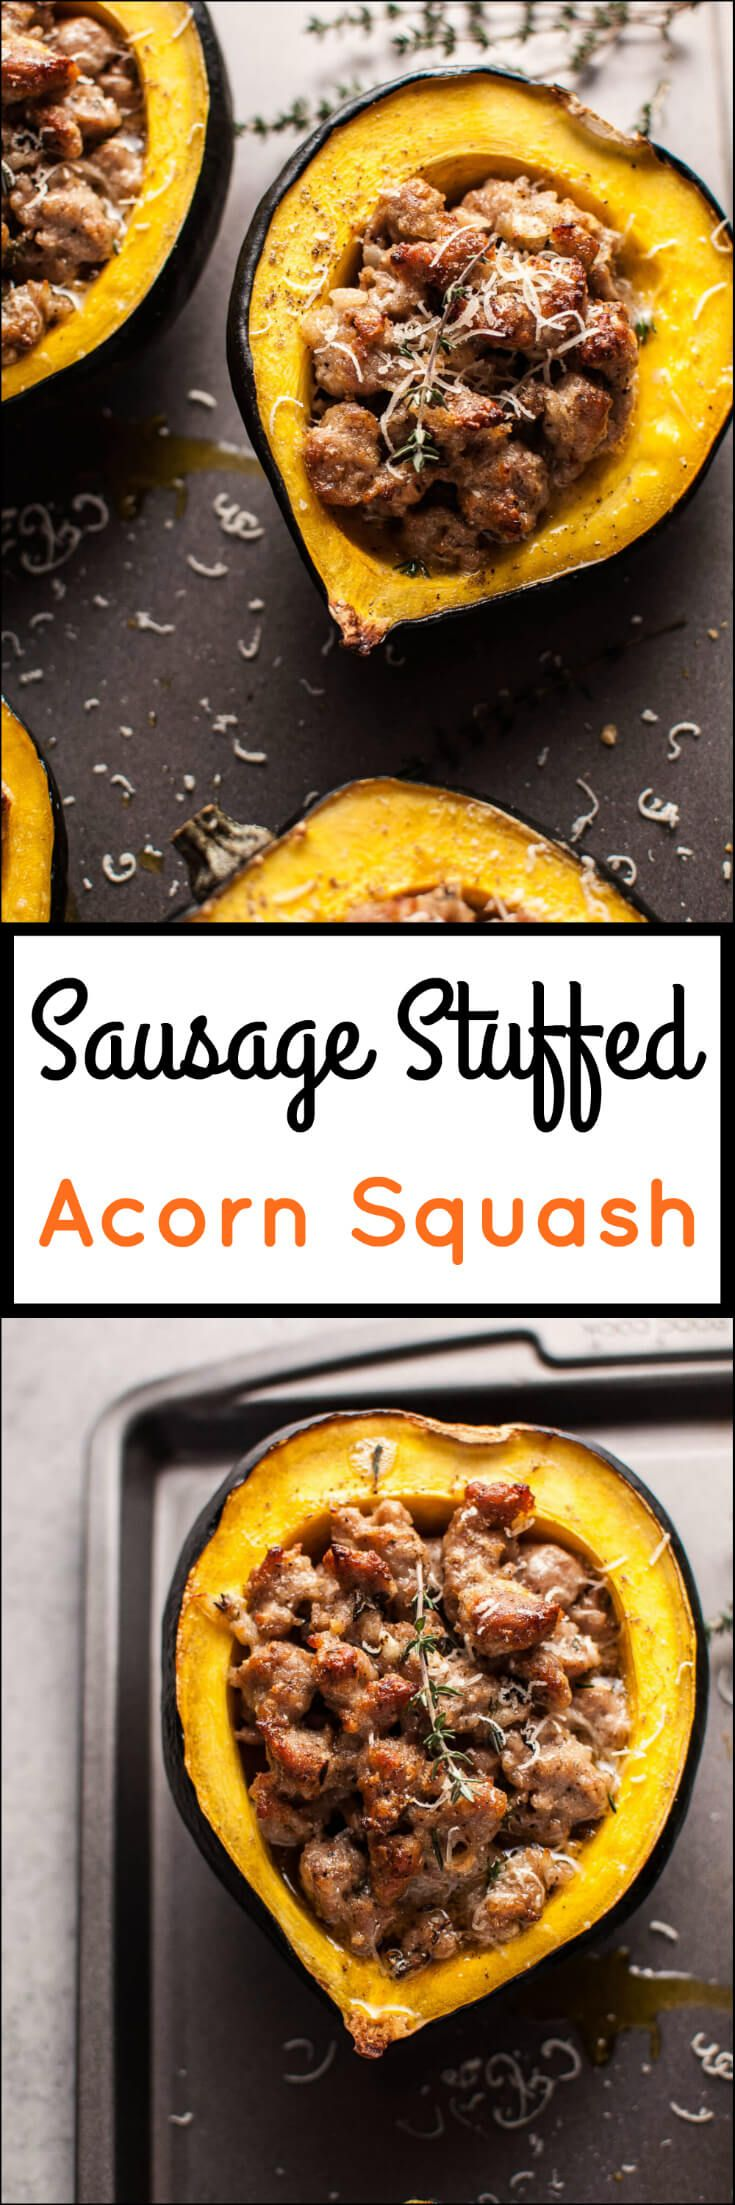 Sausage and parmesan stuffed acorn squash makes a cozy and delicious cold weather meal! | www.saltandlavender.com